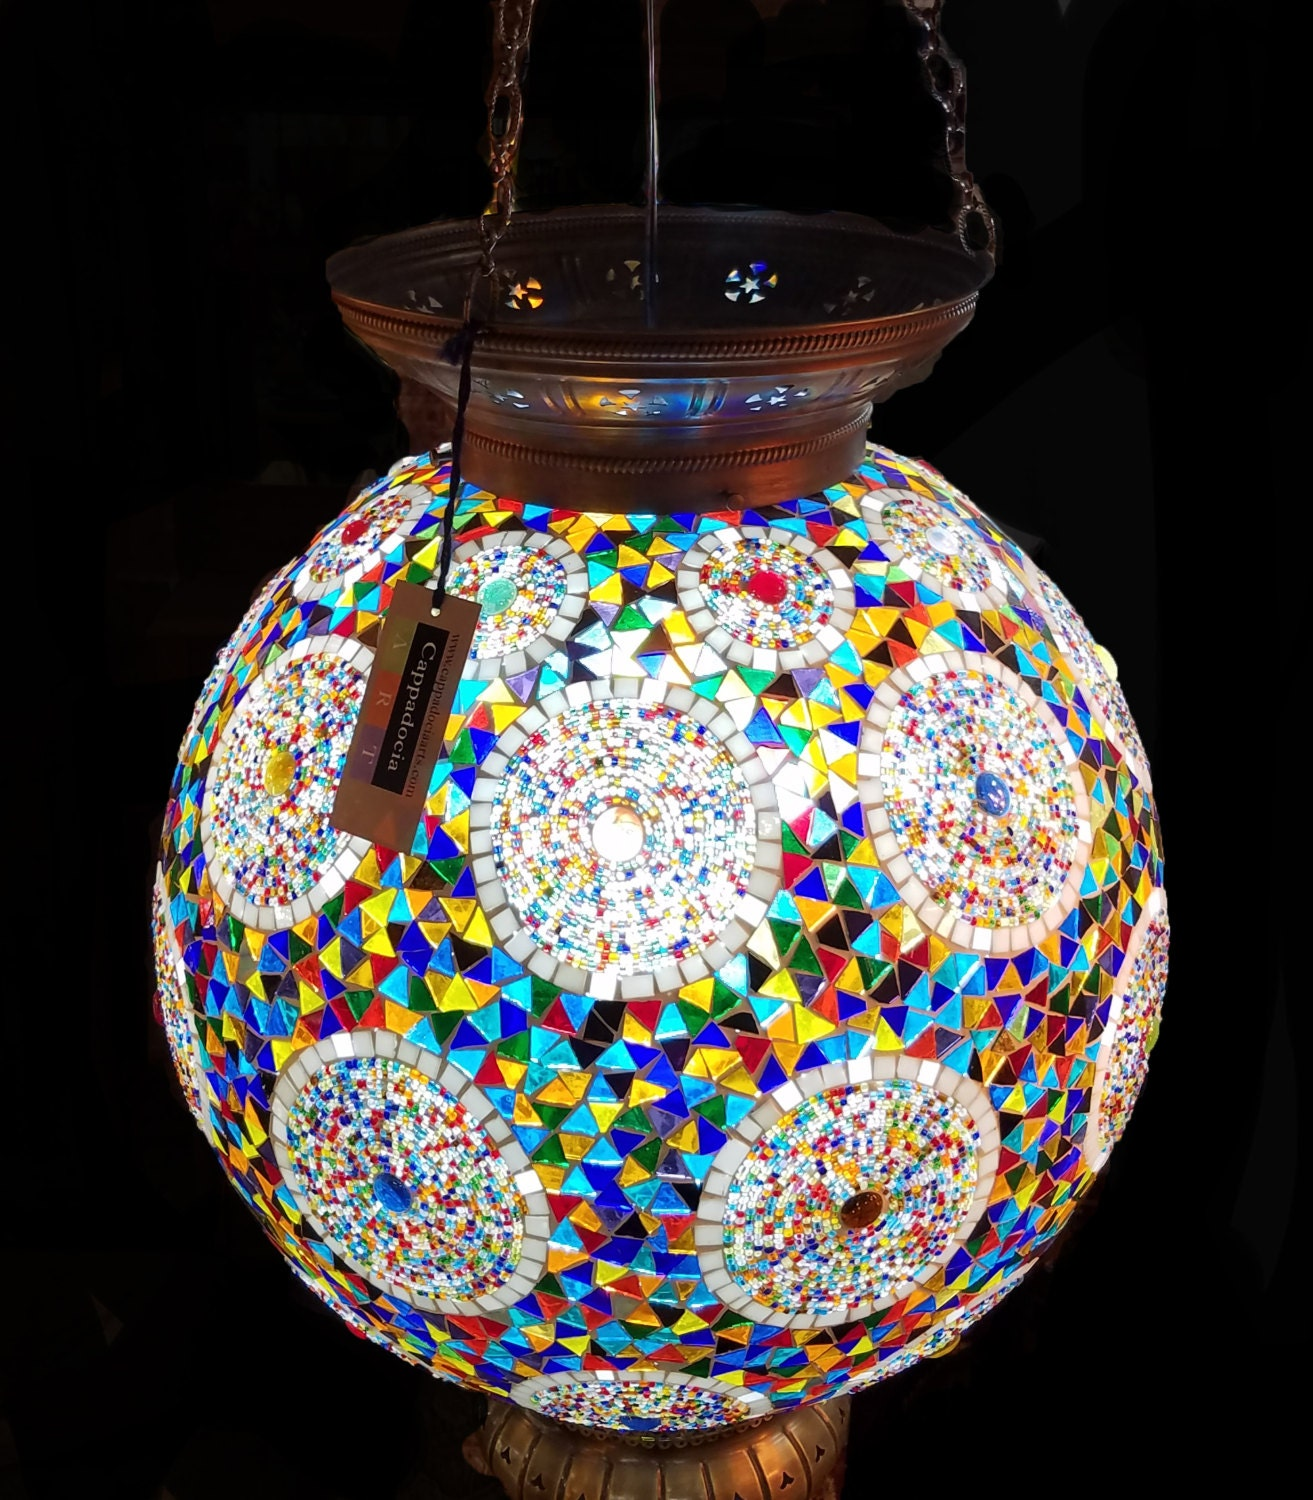 Turkish Handmade Mosaic Chandelier